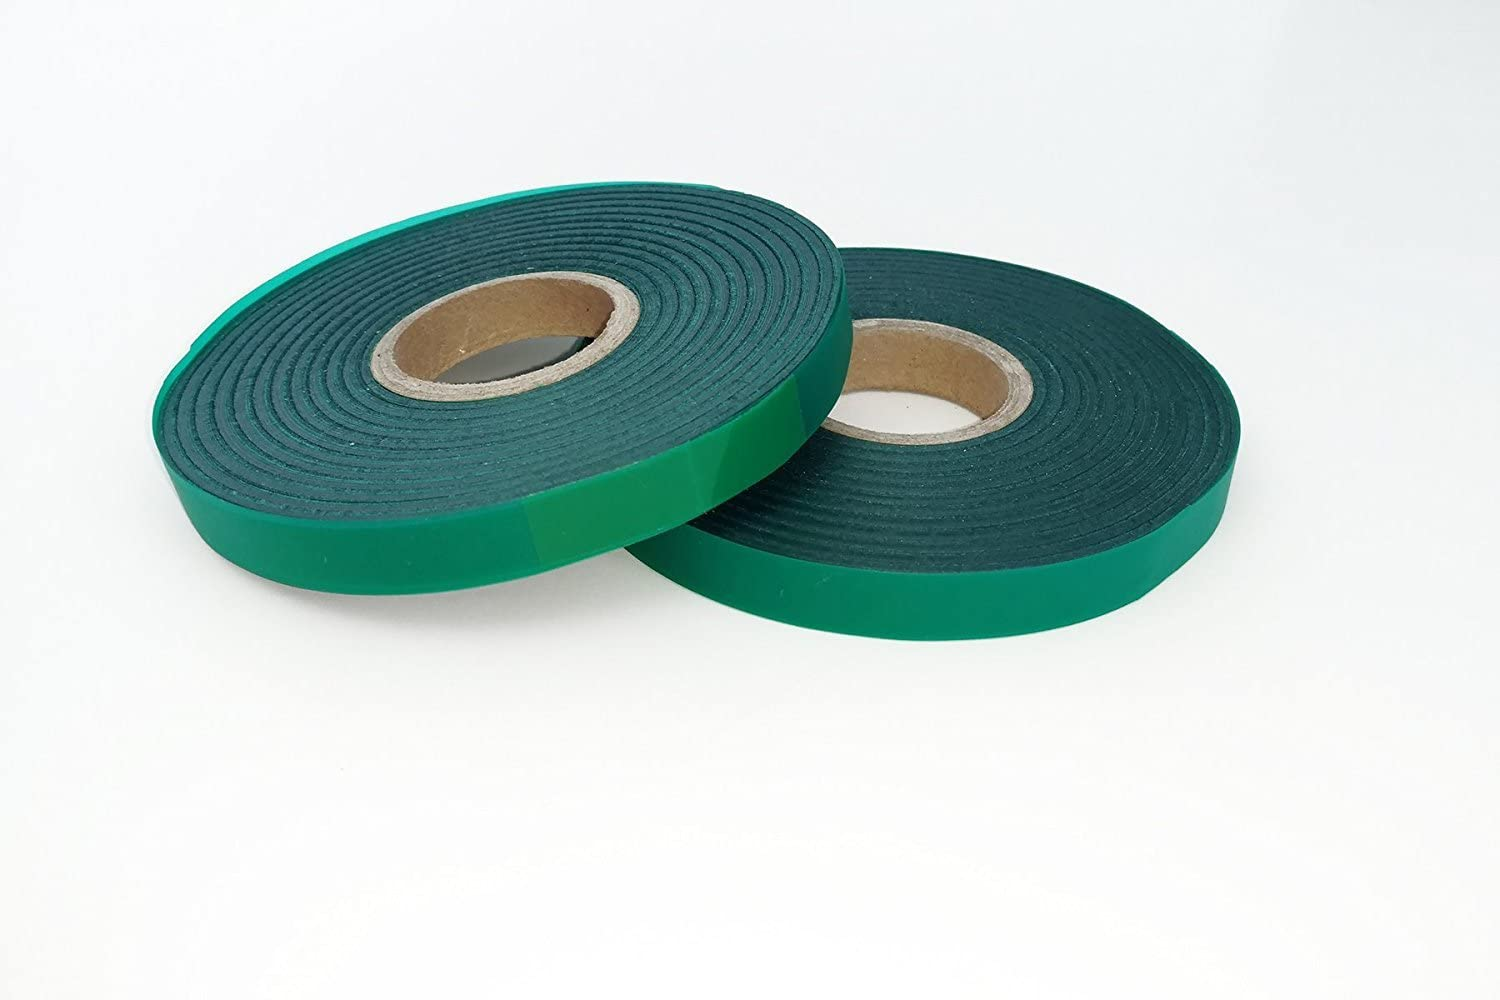 "2 Rolls - 4mil Thick 300 FEET x 1/2"" Stretch Tie Tape Plant Ribbon Garden Green Vinyl Stake"